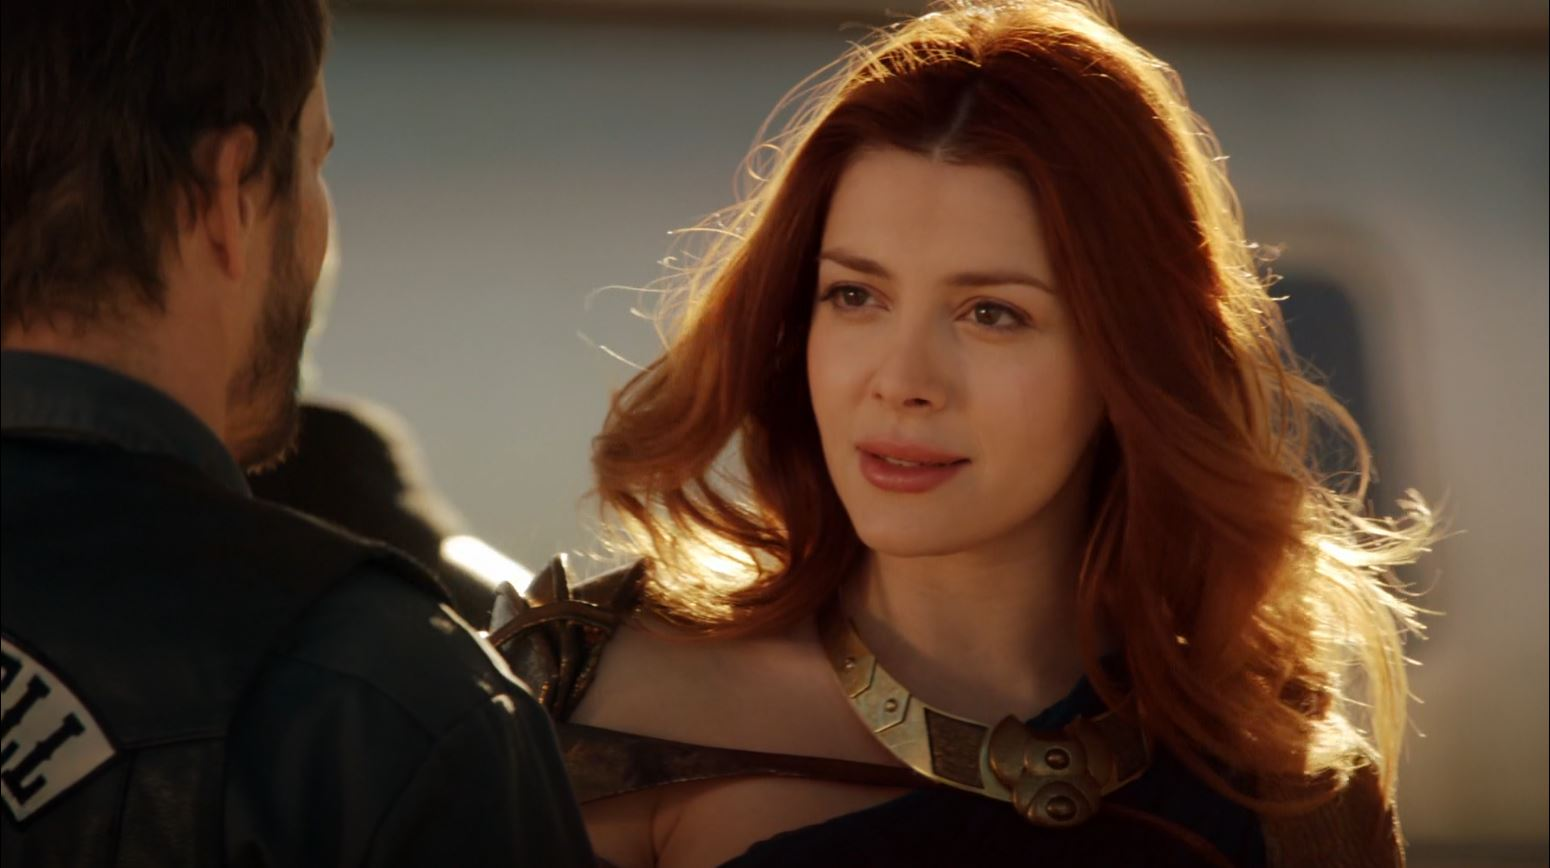 Agents of S.H.I.E.L.D S1Ep15 'Yes Men' - Elena Satine as Lorelei